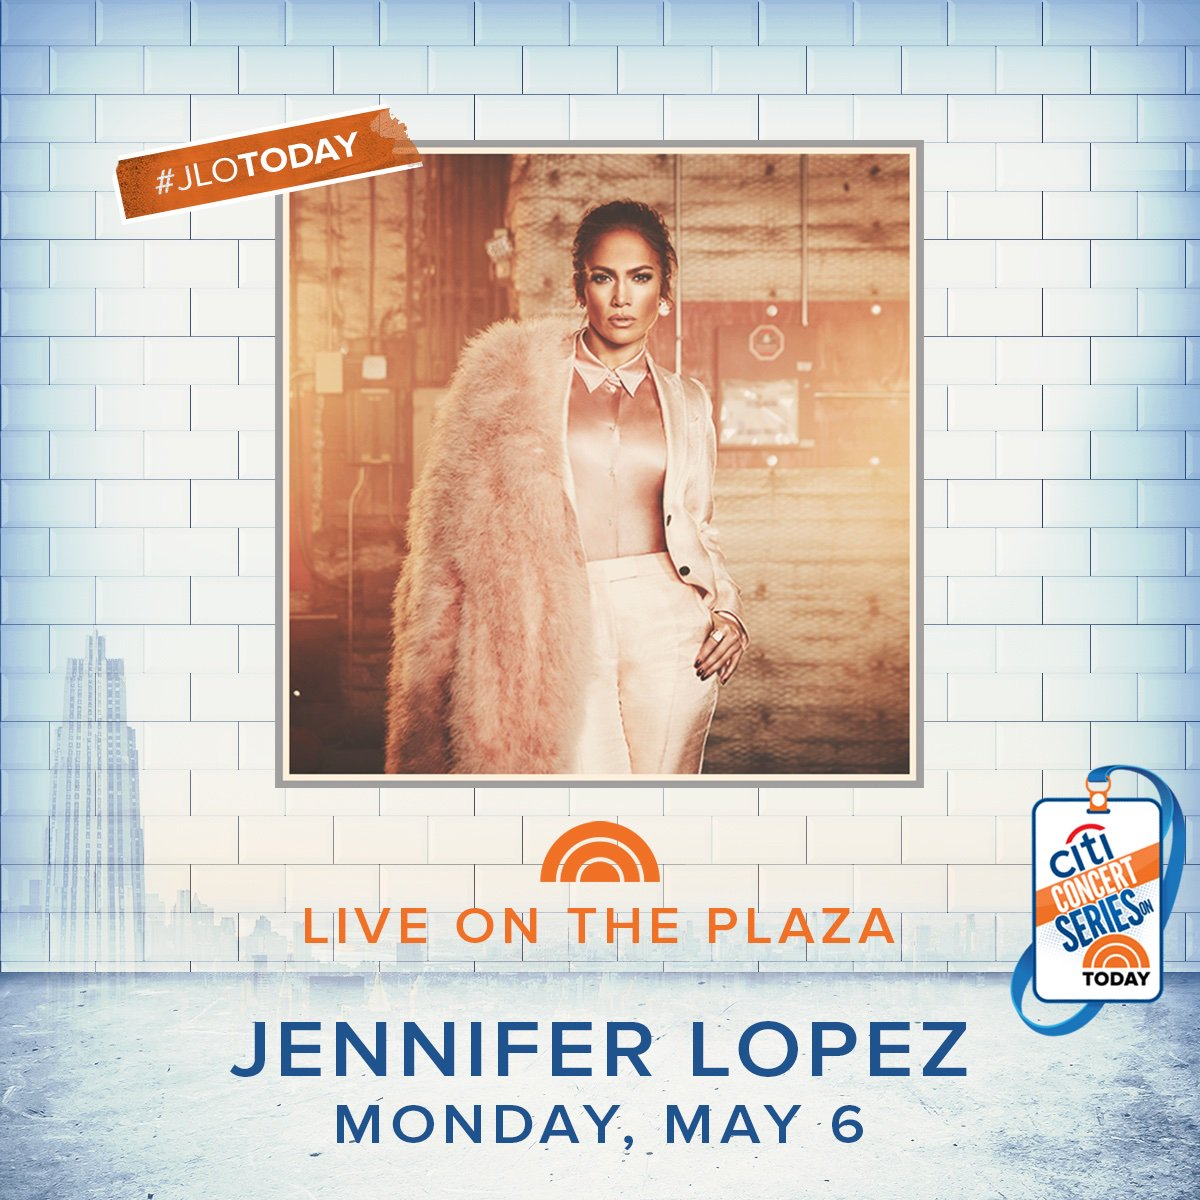 This Monday I'm LIVE on the plaza!!!✨#JLoToday @TODAYshow https://t.co/WjCZTDGq4D